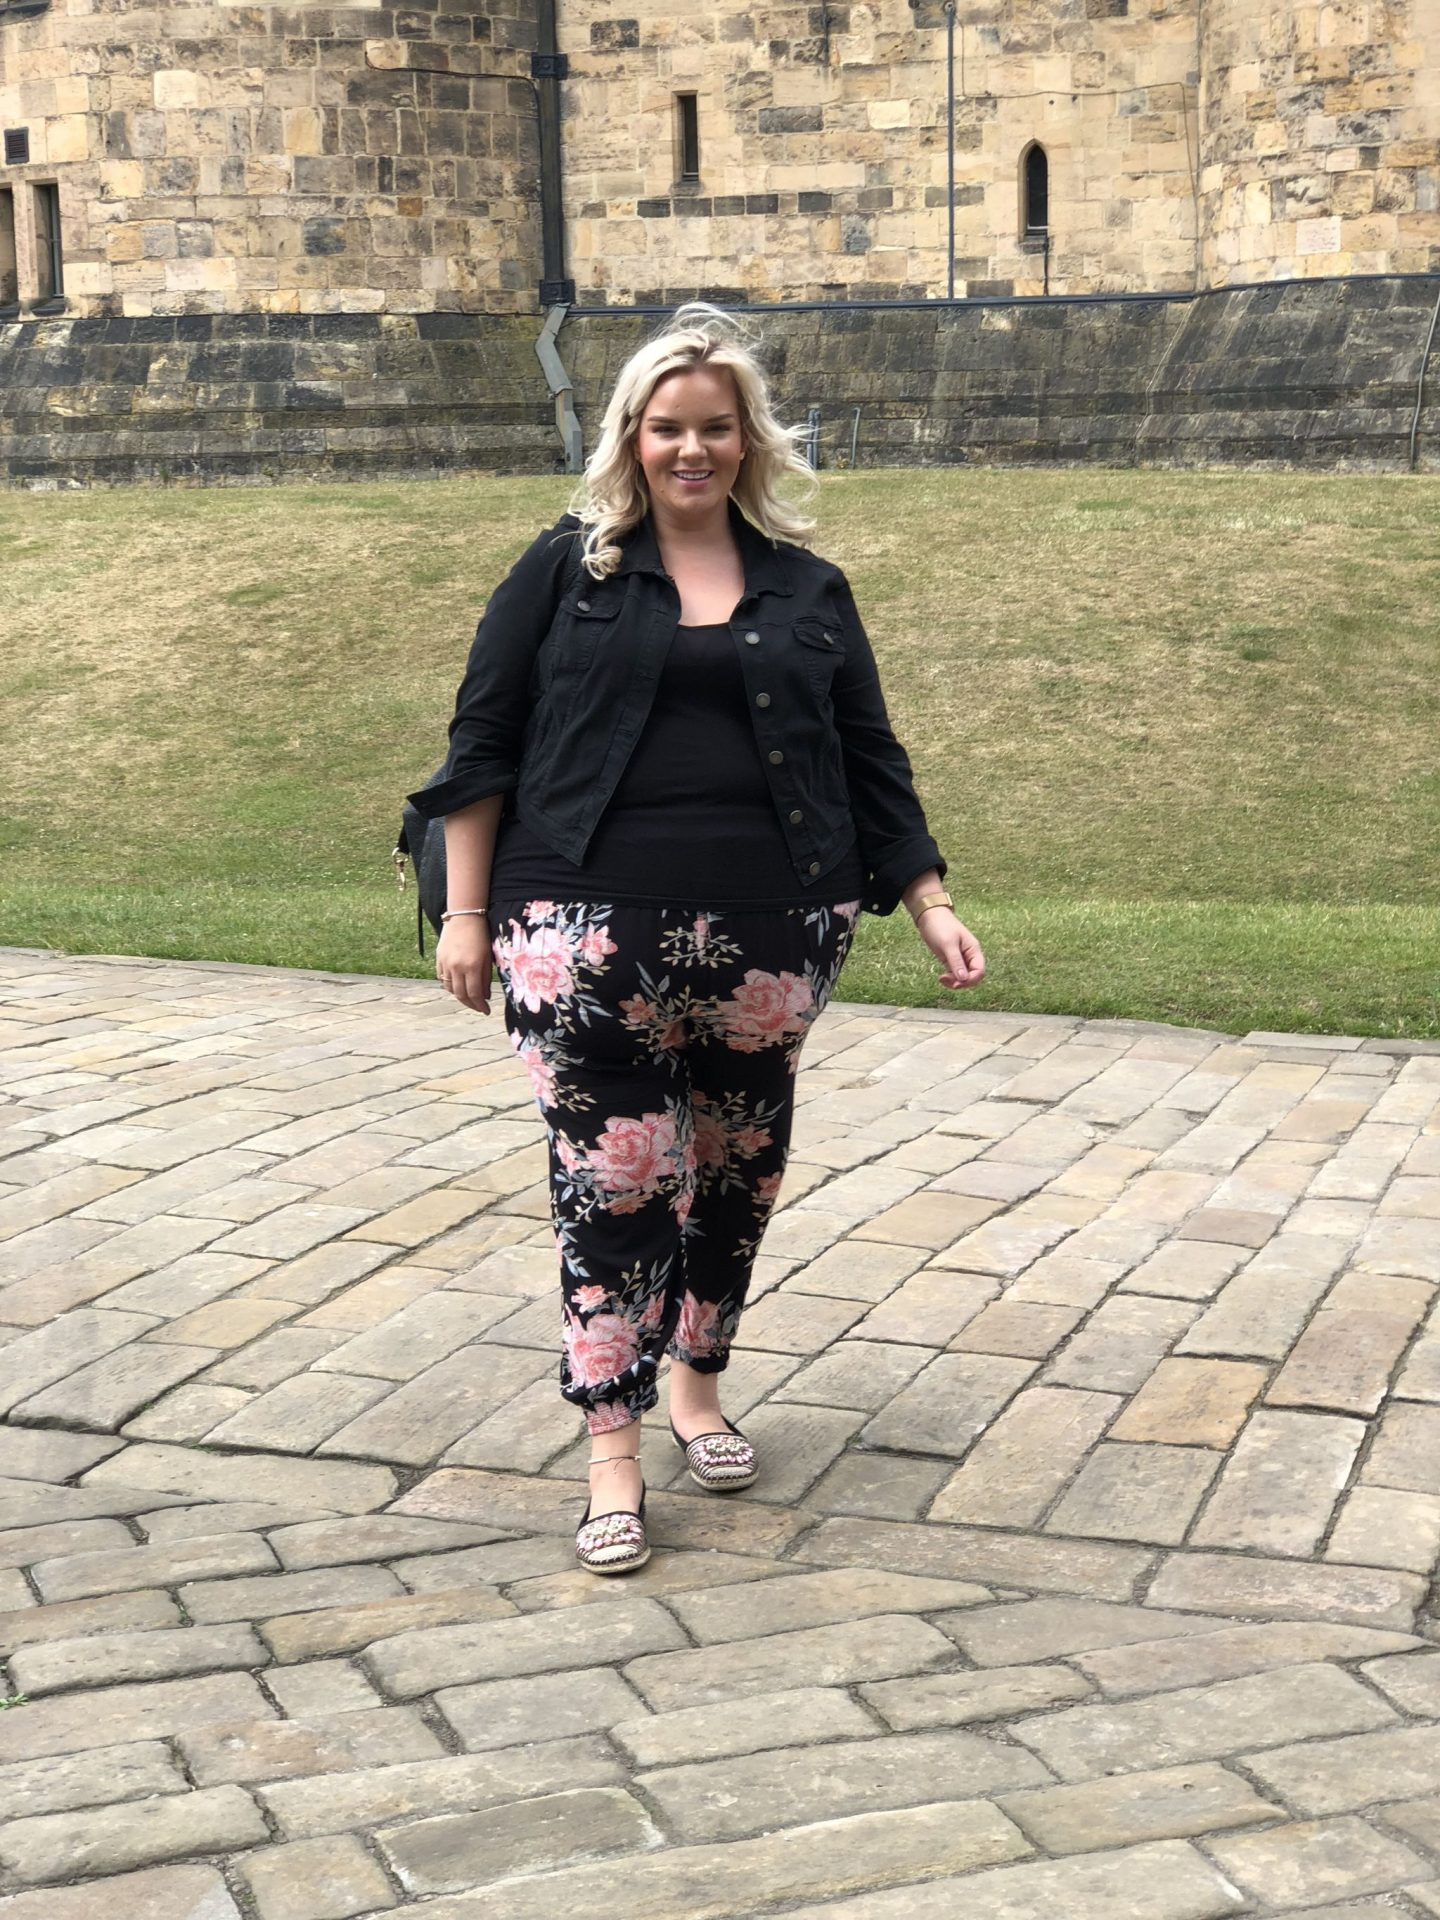 WhatLauraLoves at Alnwick Castle